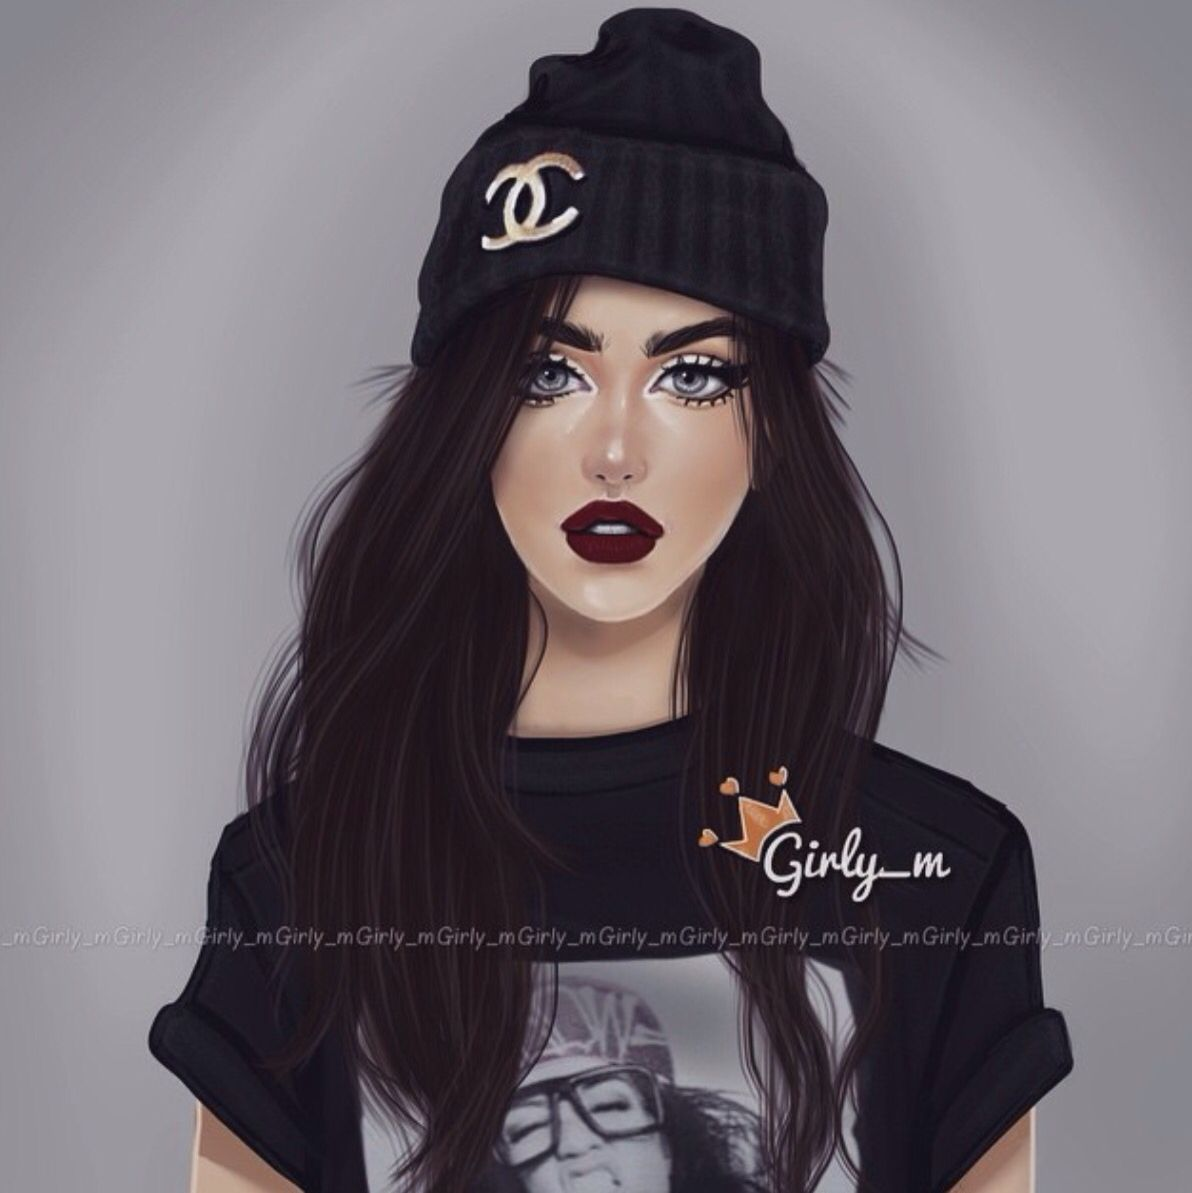 Girly m girly m pinterest girly drawings and rpg for Girly tumblr drawings